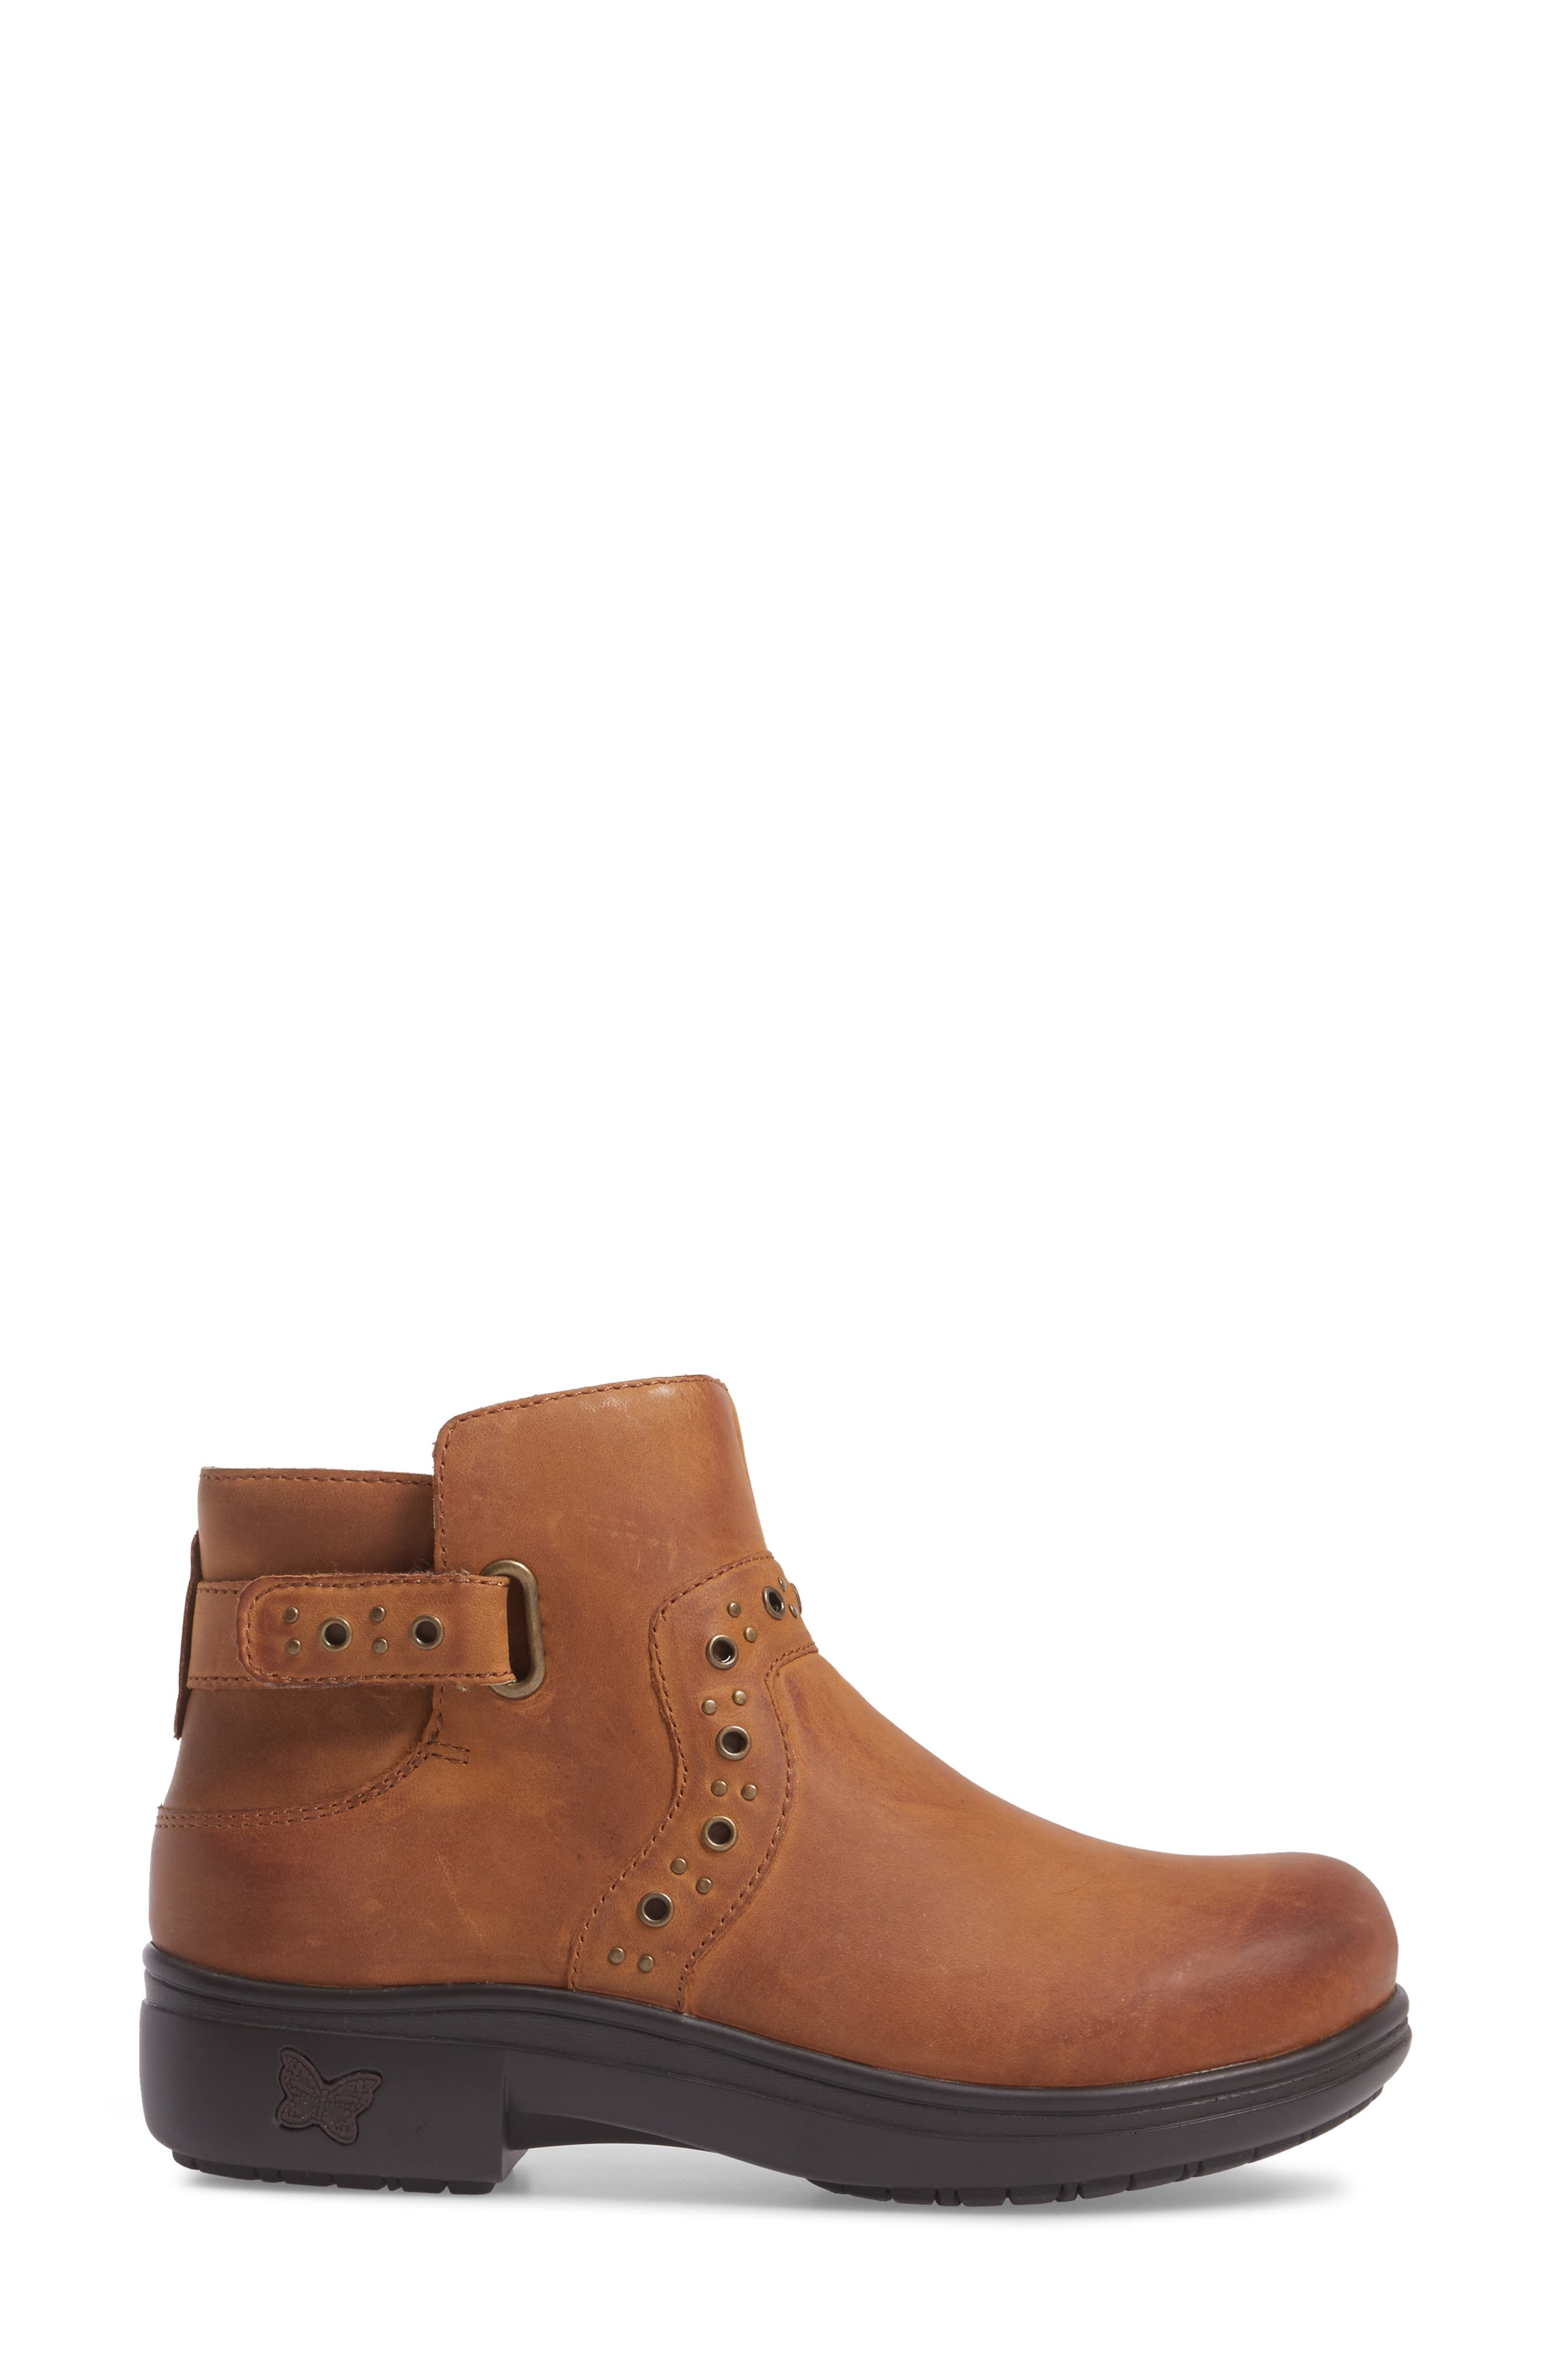 Zoey Ankle Boot,                             Alternate thumbnail 3, color,                             WALNUT LEATHER